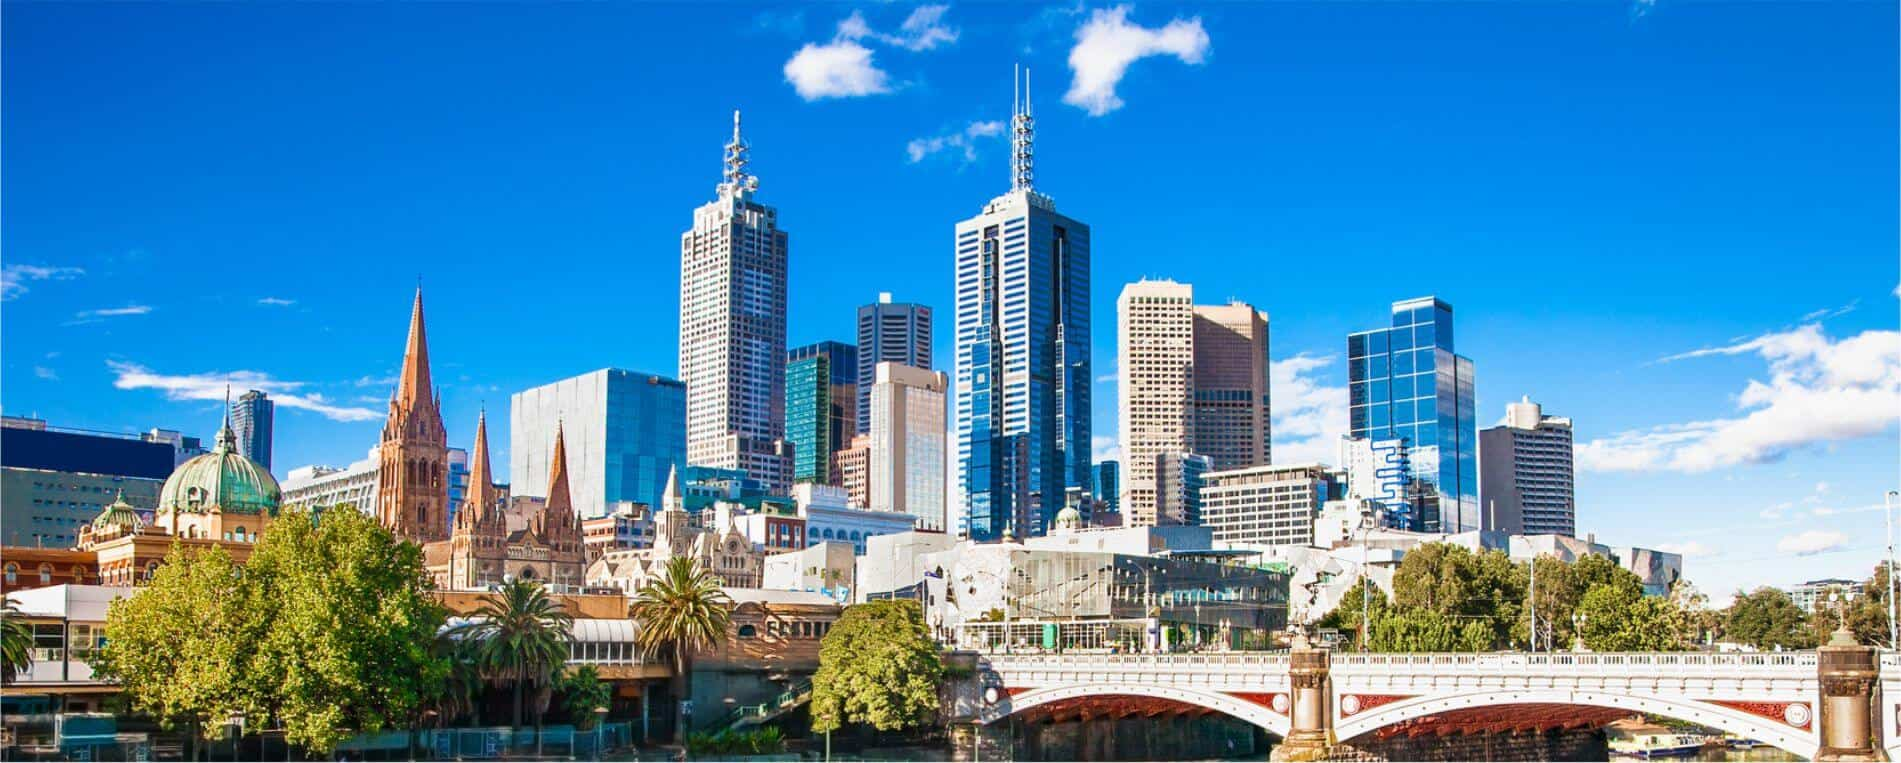 Top 5 short courses in Melbourne that can Fetch you technical job top 5 short courses in melbourne Top 5 short courses in Melbourne that can Fetch you technical job Top 5 short courses in Melbourne that can Fetch you technical job 1